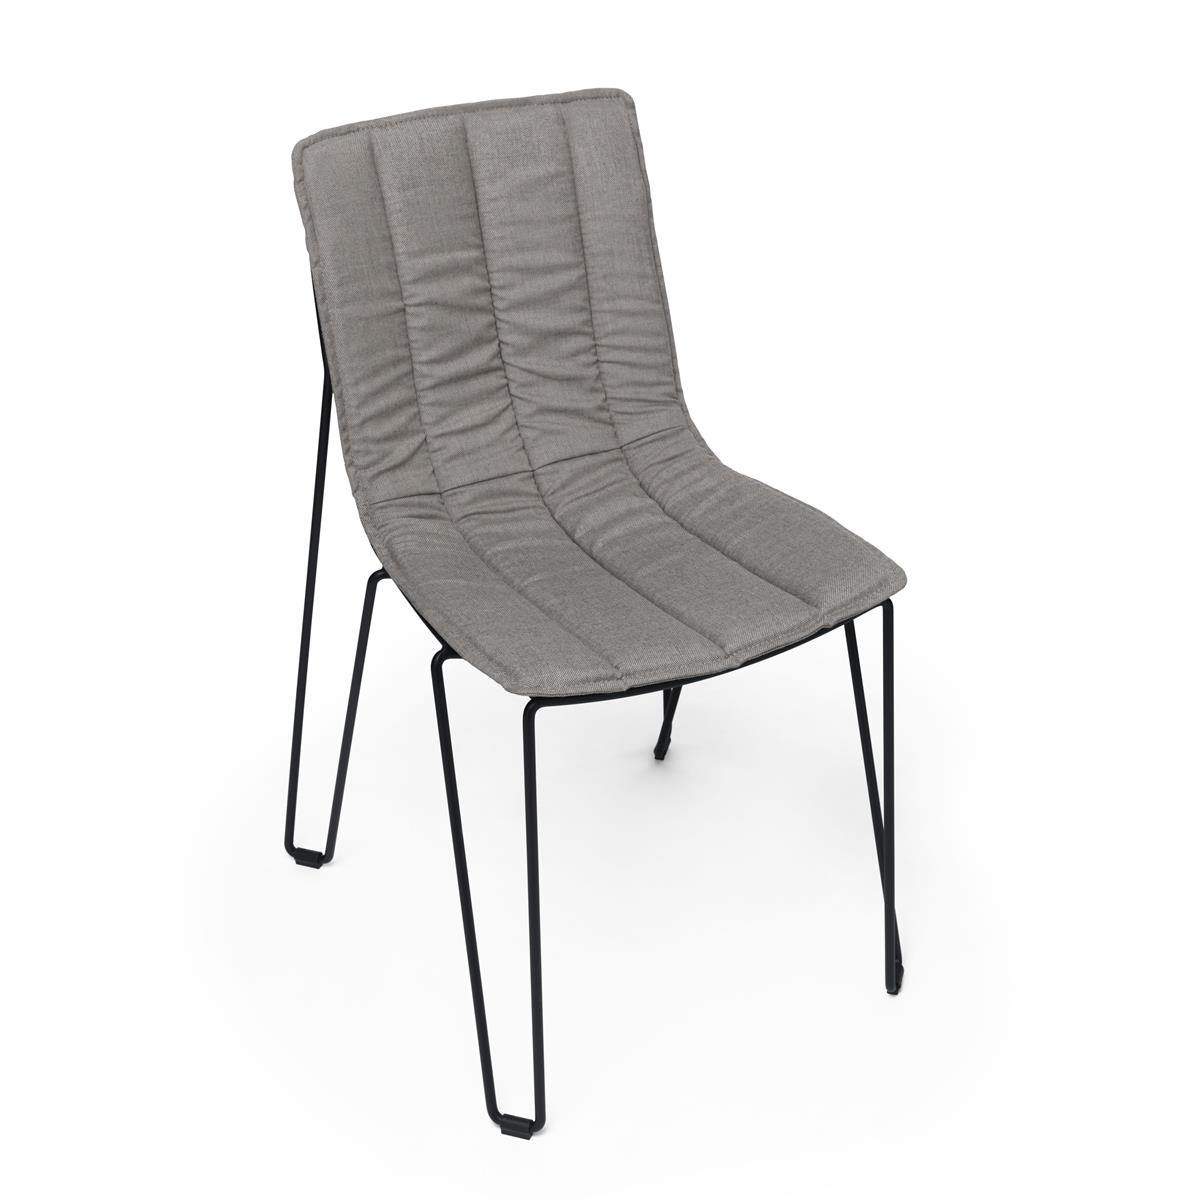 Tio Chair Seat Cover med Remix tekstil fra Kvadrat